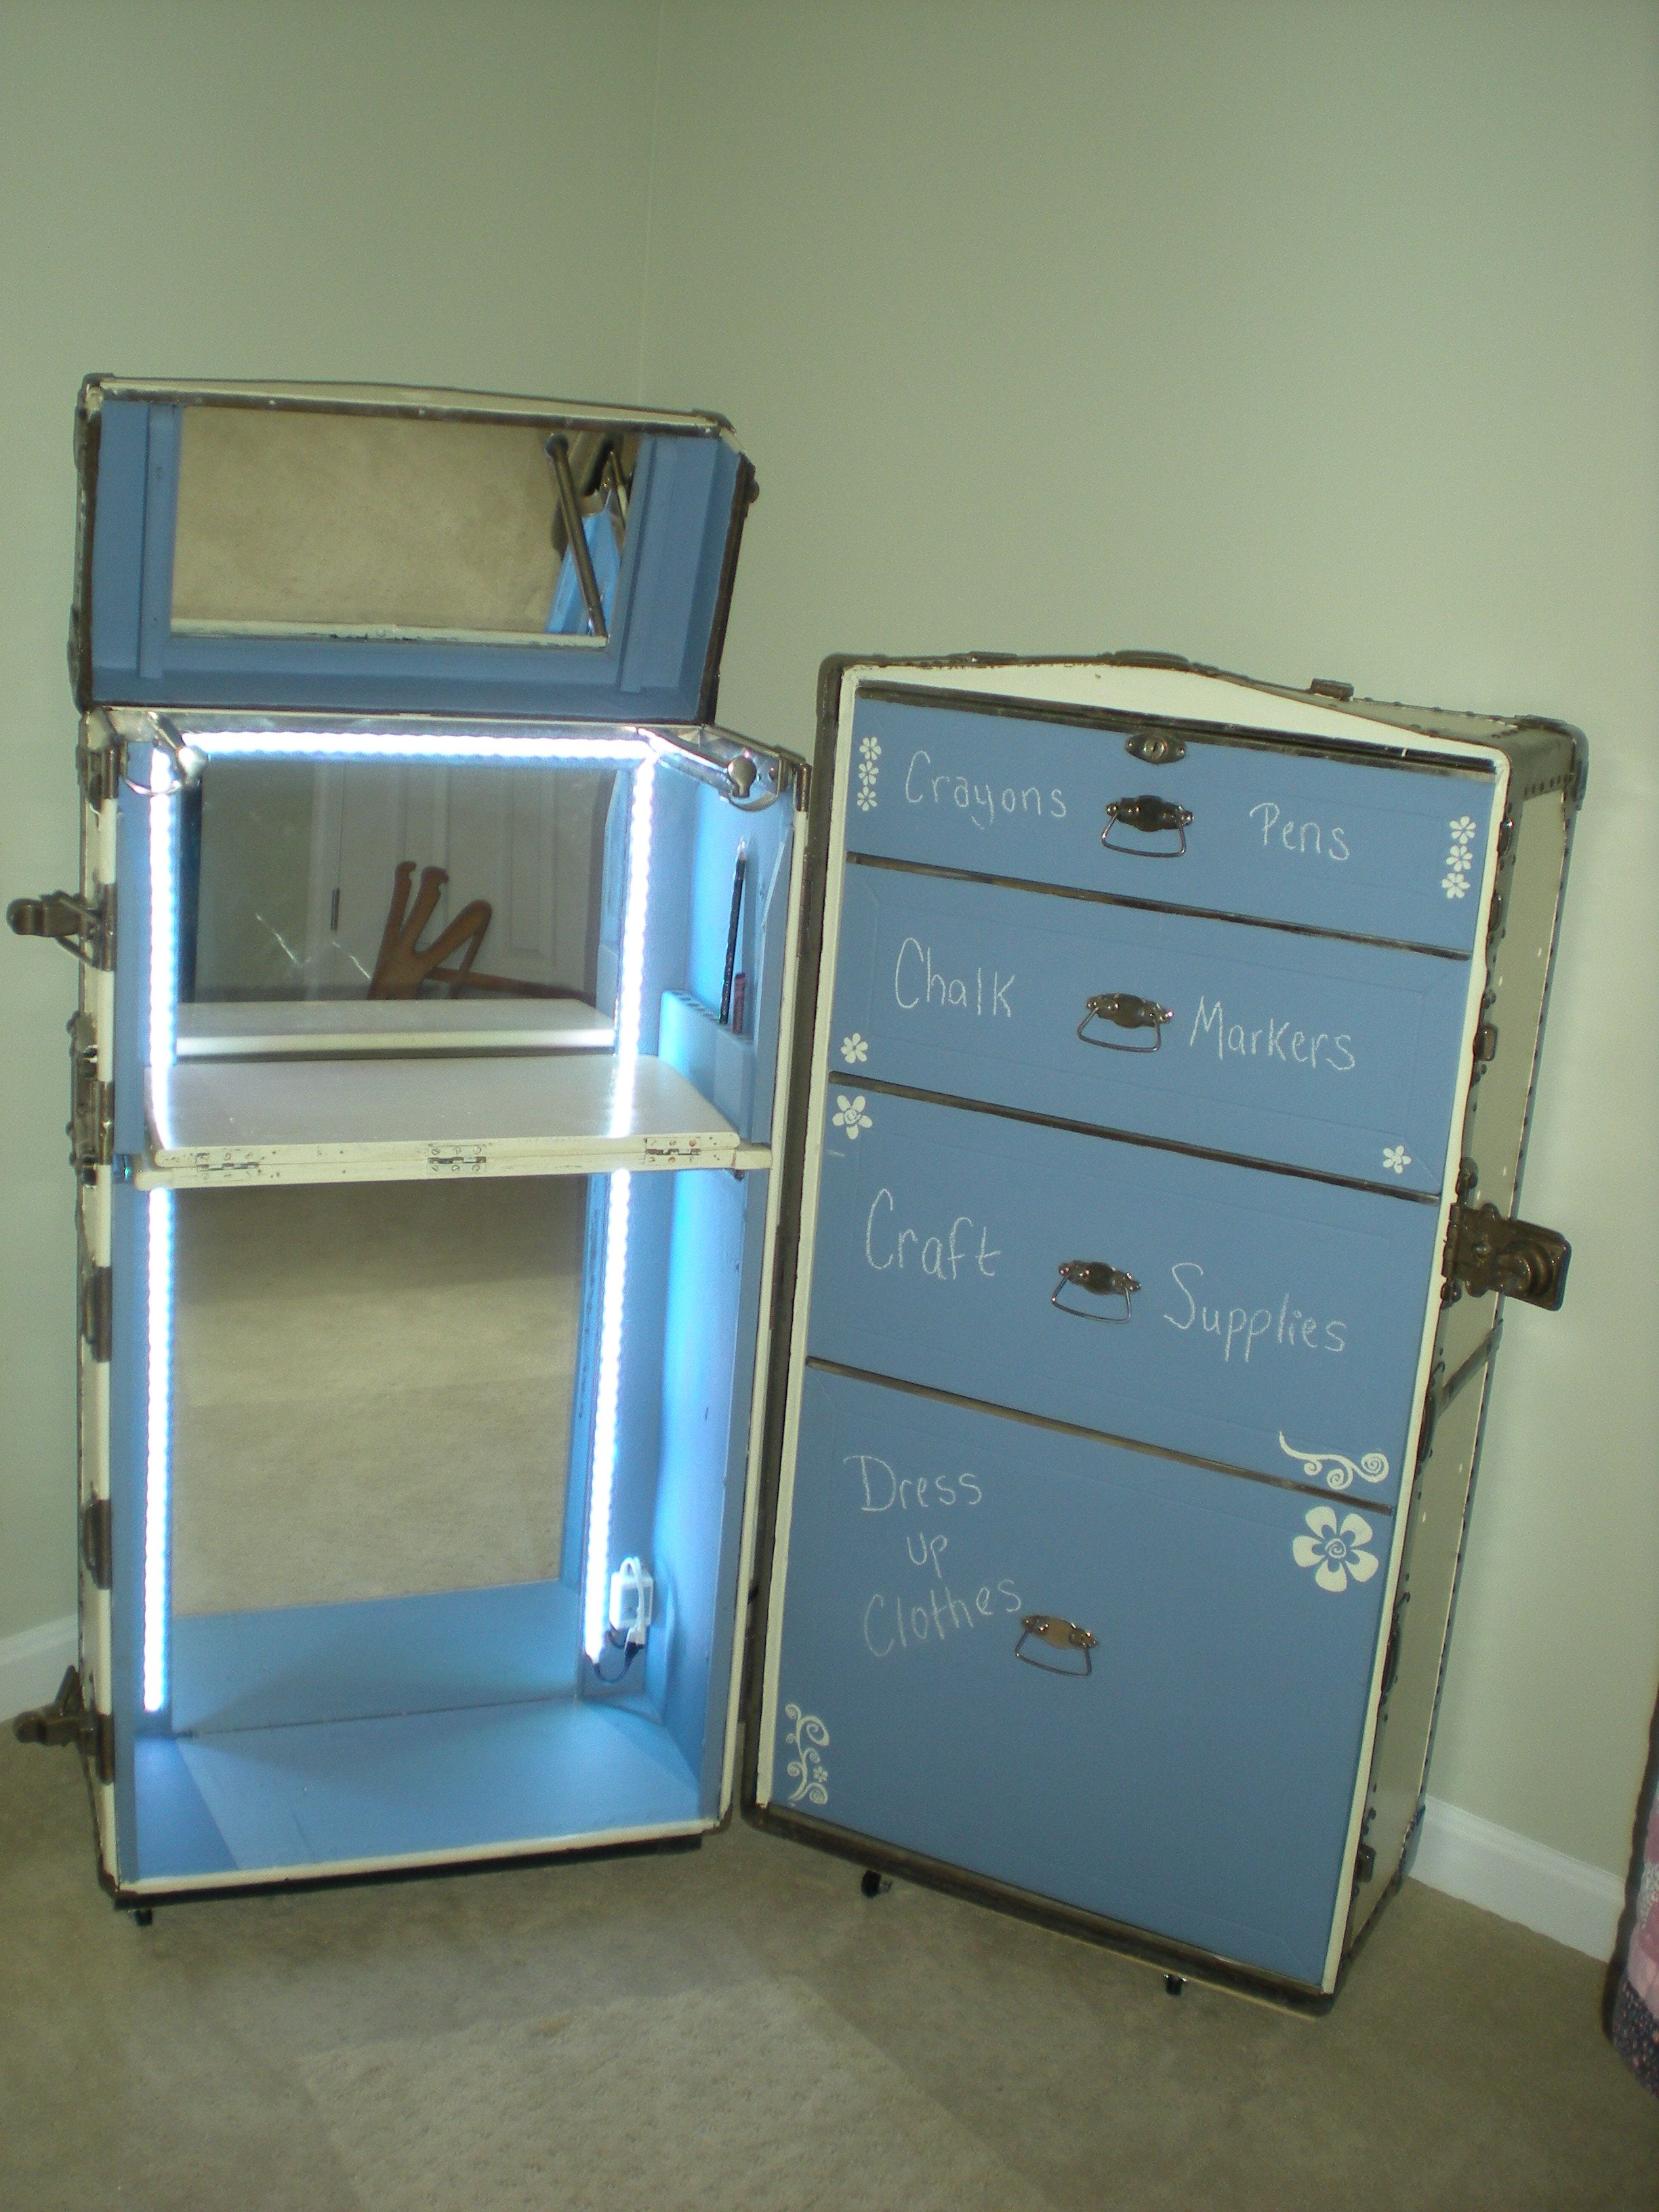 Upcycled Repurposed This Old Steamer Wardrobe Trunk Into A